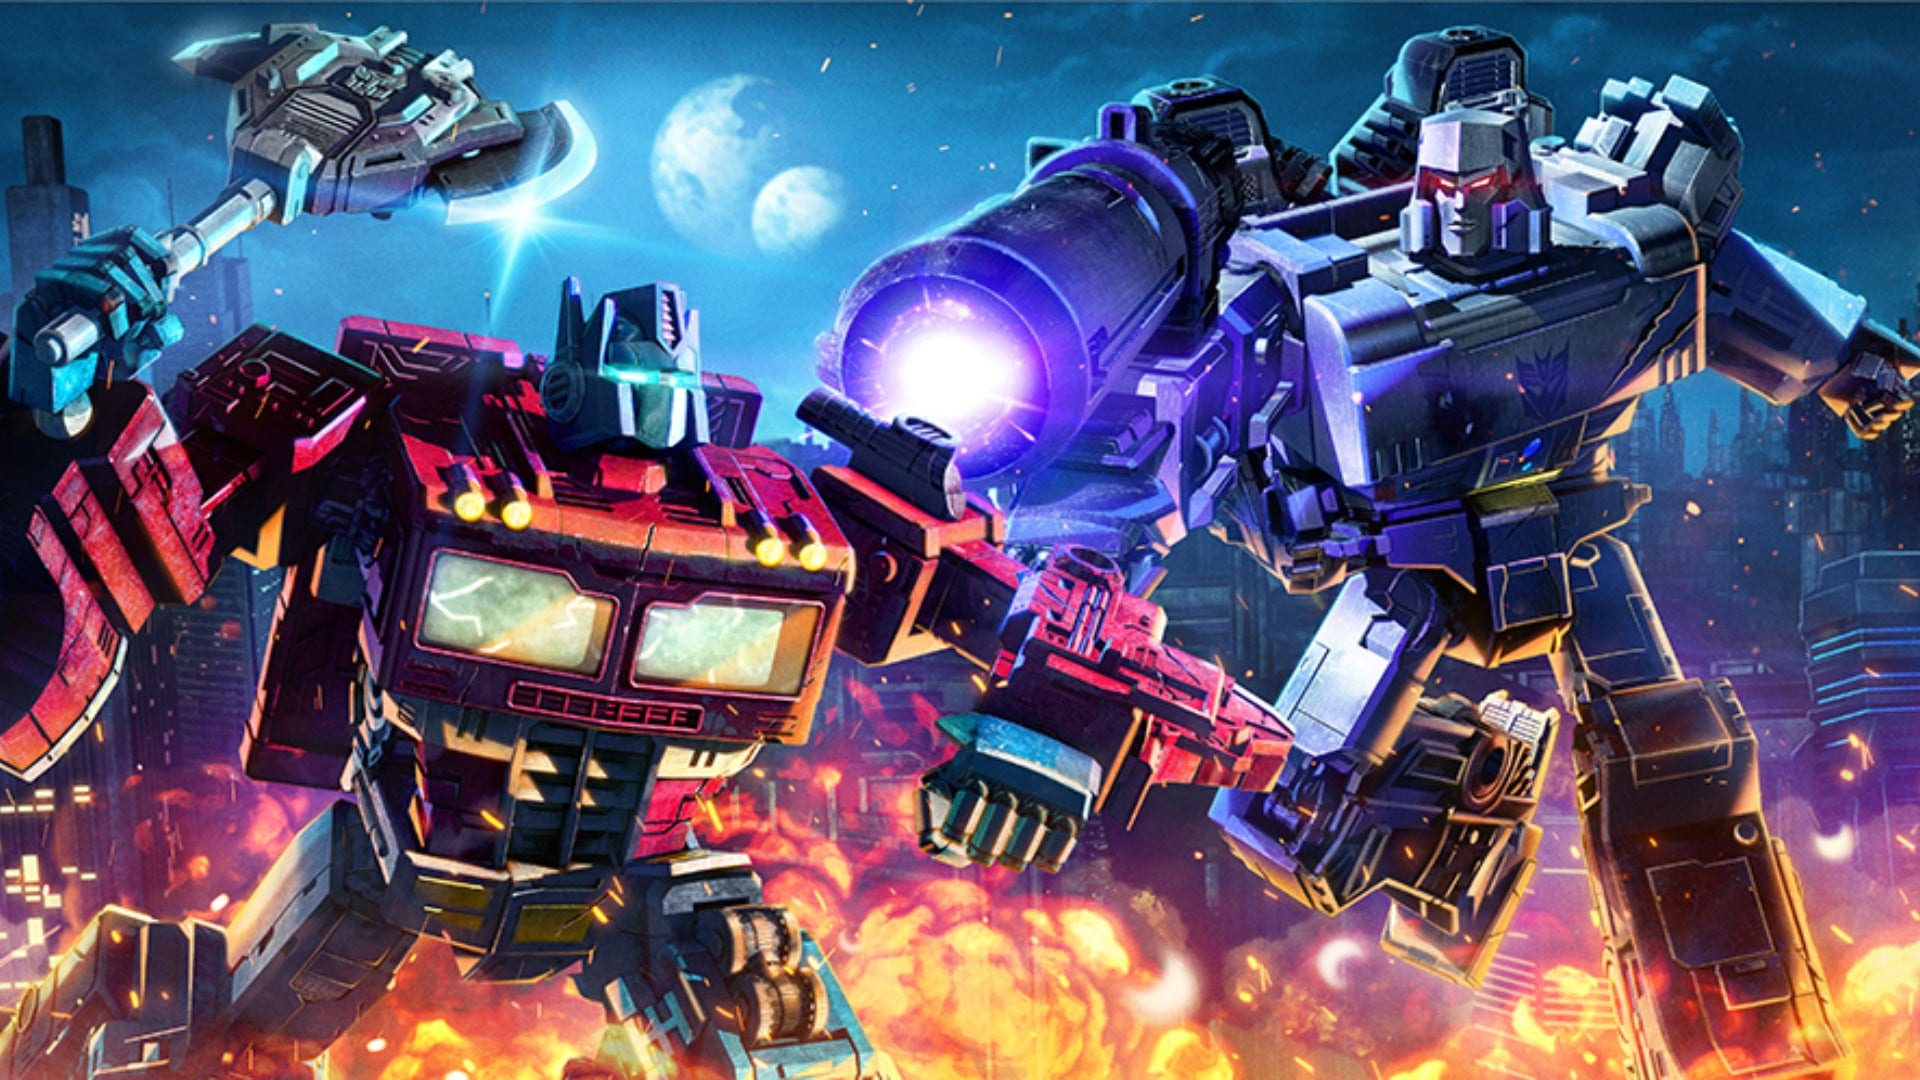 Preview And Release Date: Transformers: War for Cybertron Season 3